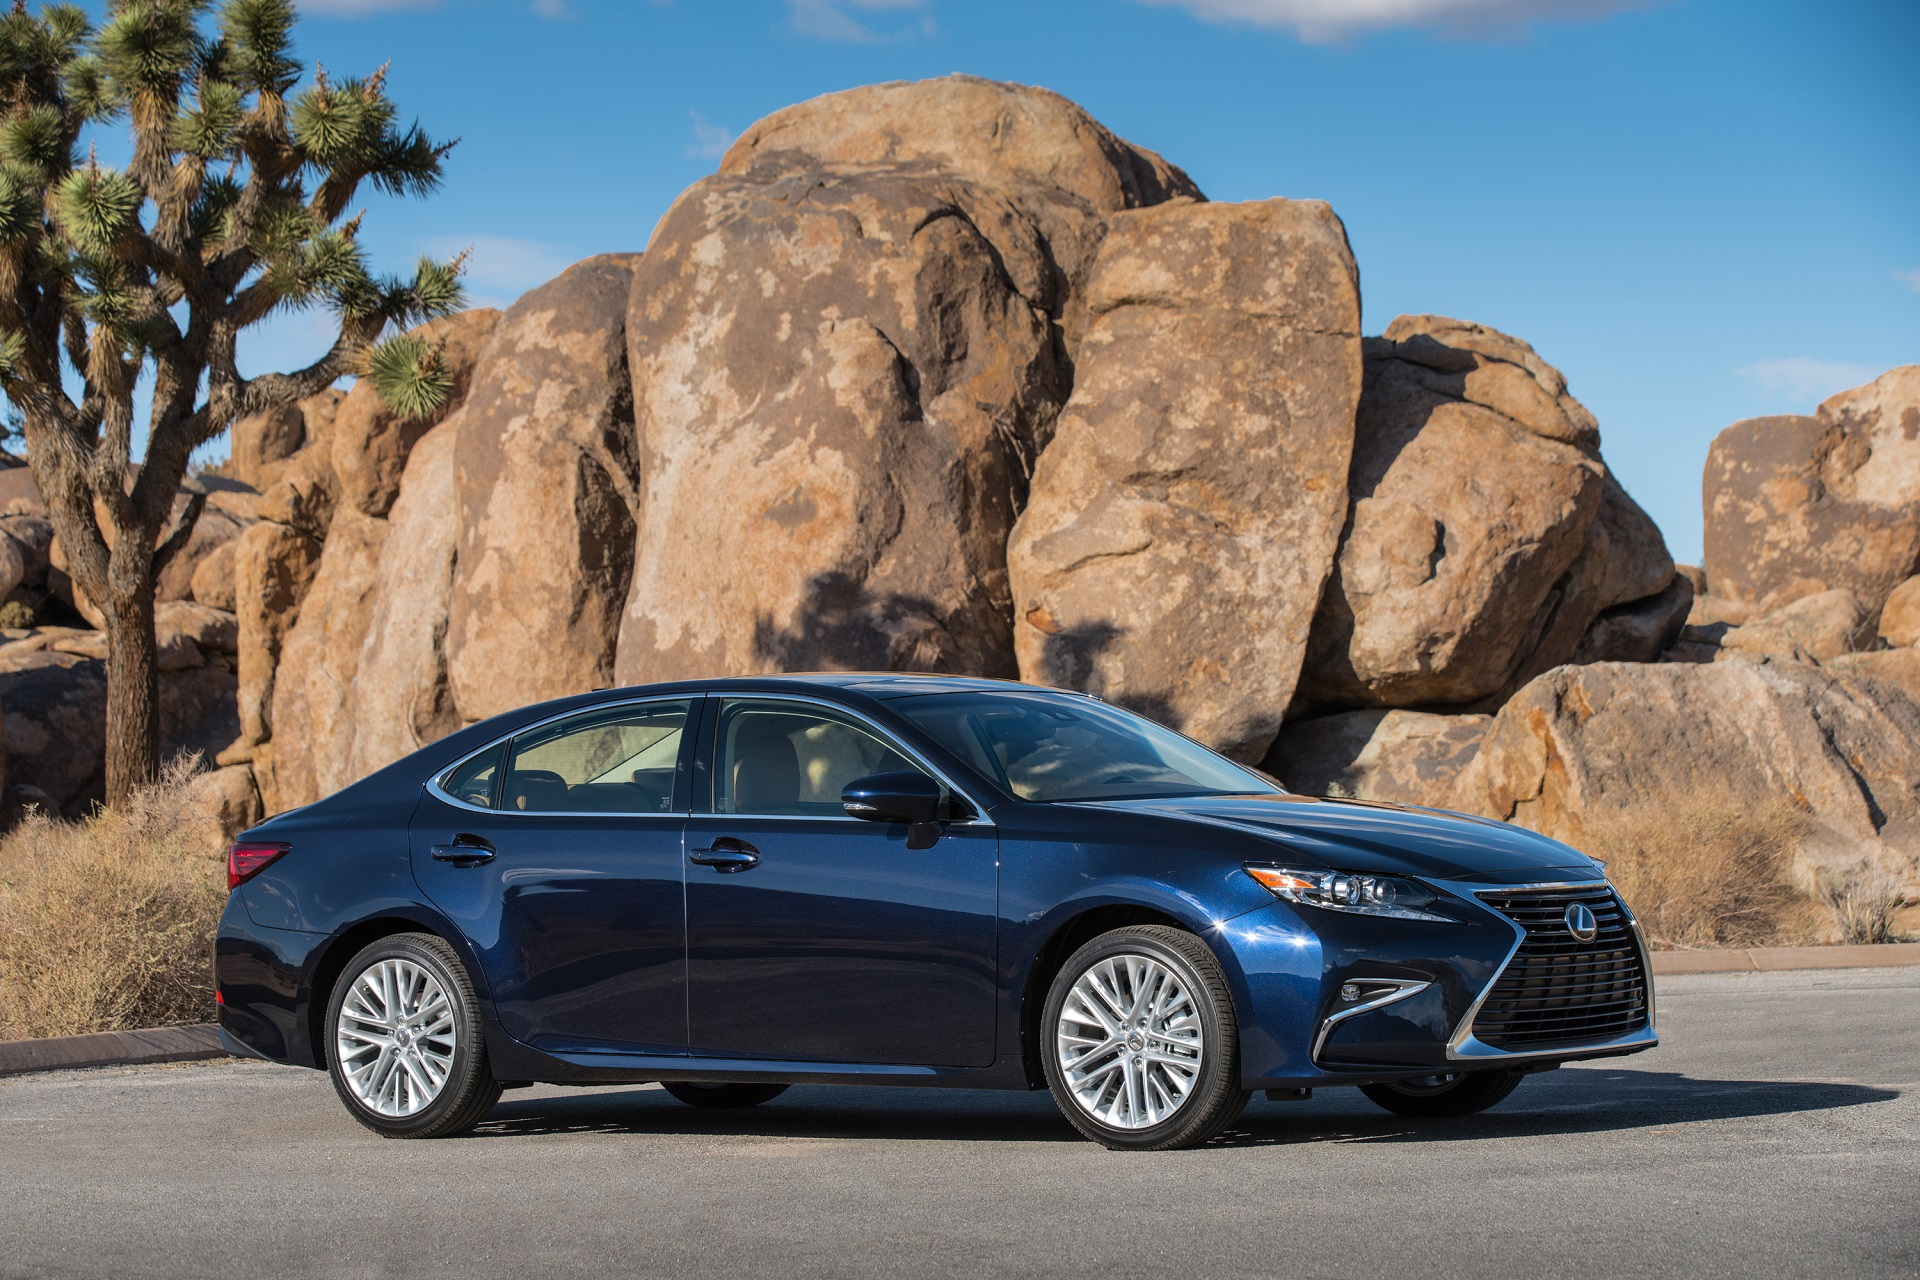 Cadillac El Paso >> 2018 Lexus ES Review, Ratings, Specs, Prices, and Photos - The Car Connection